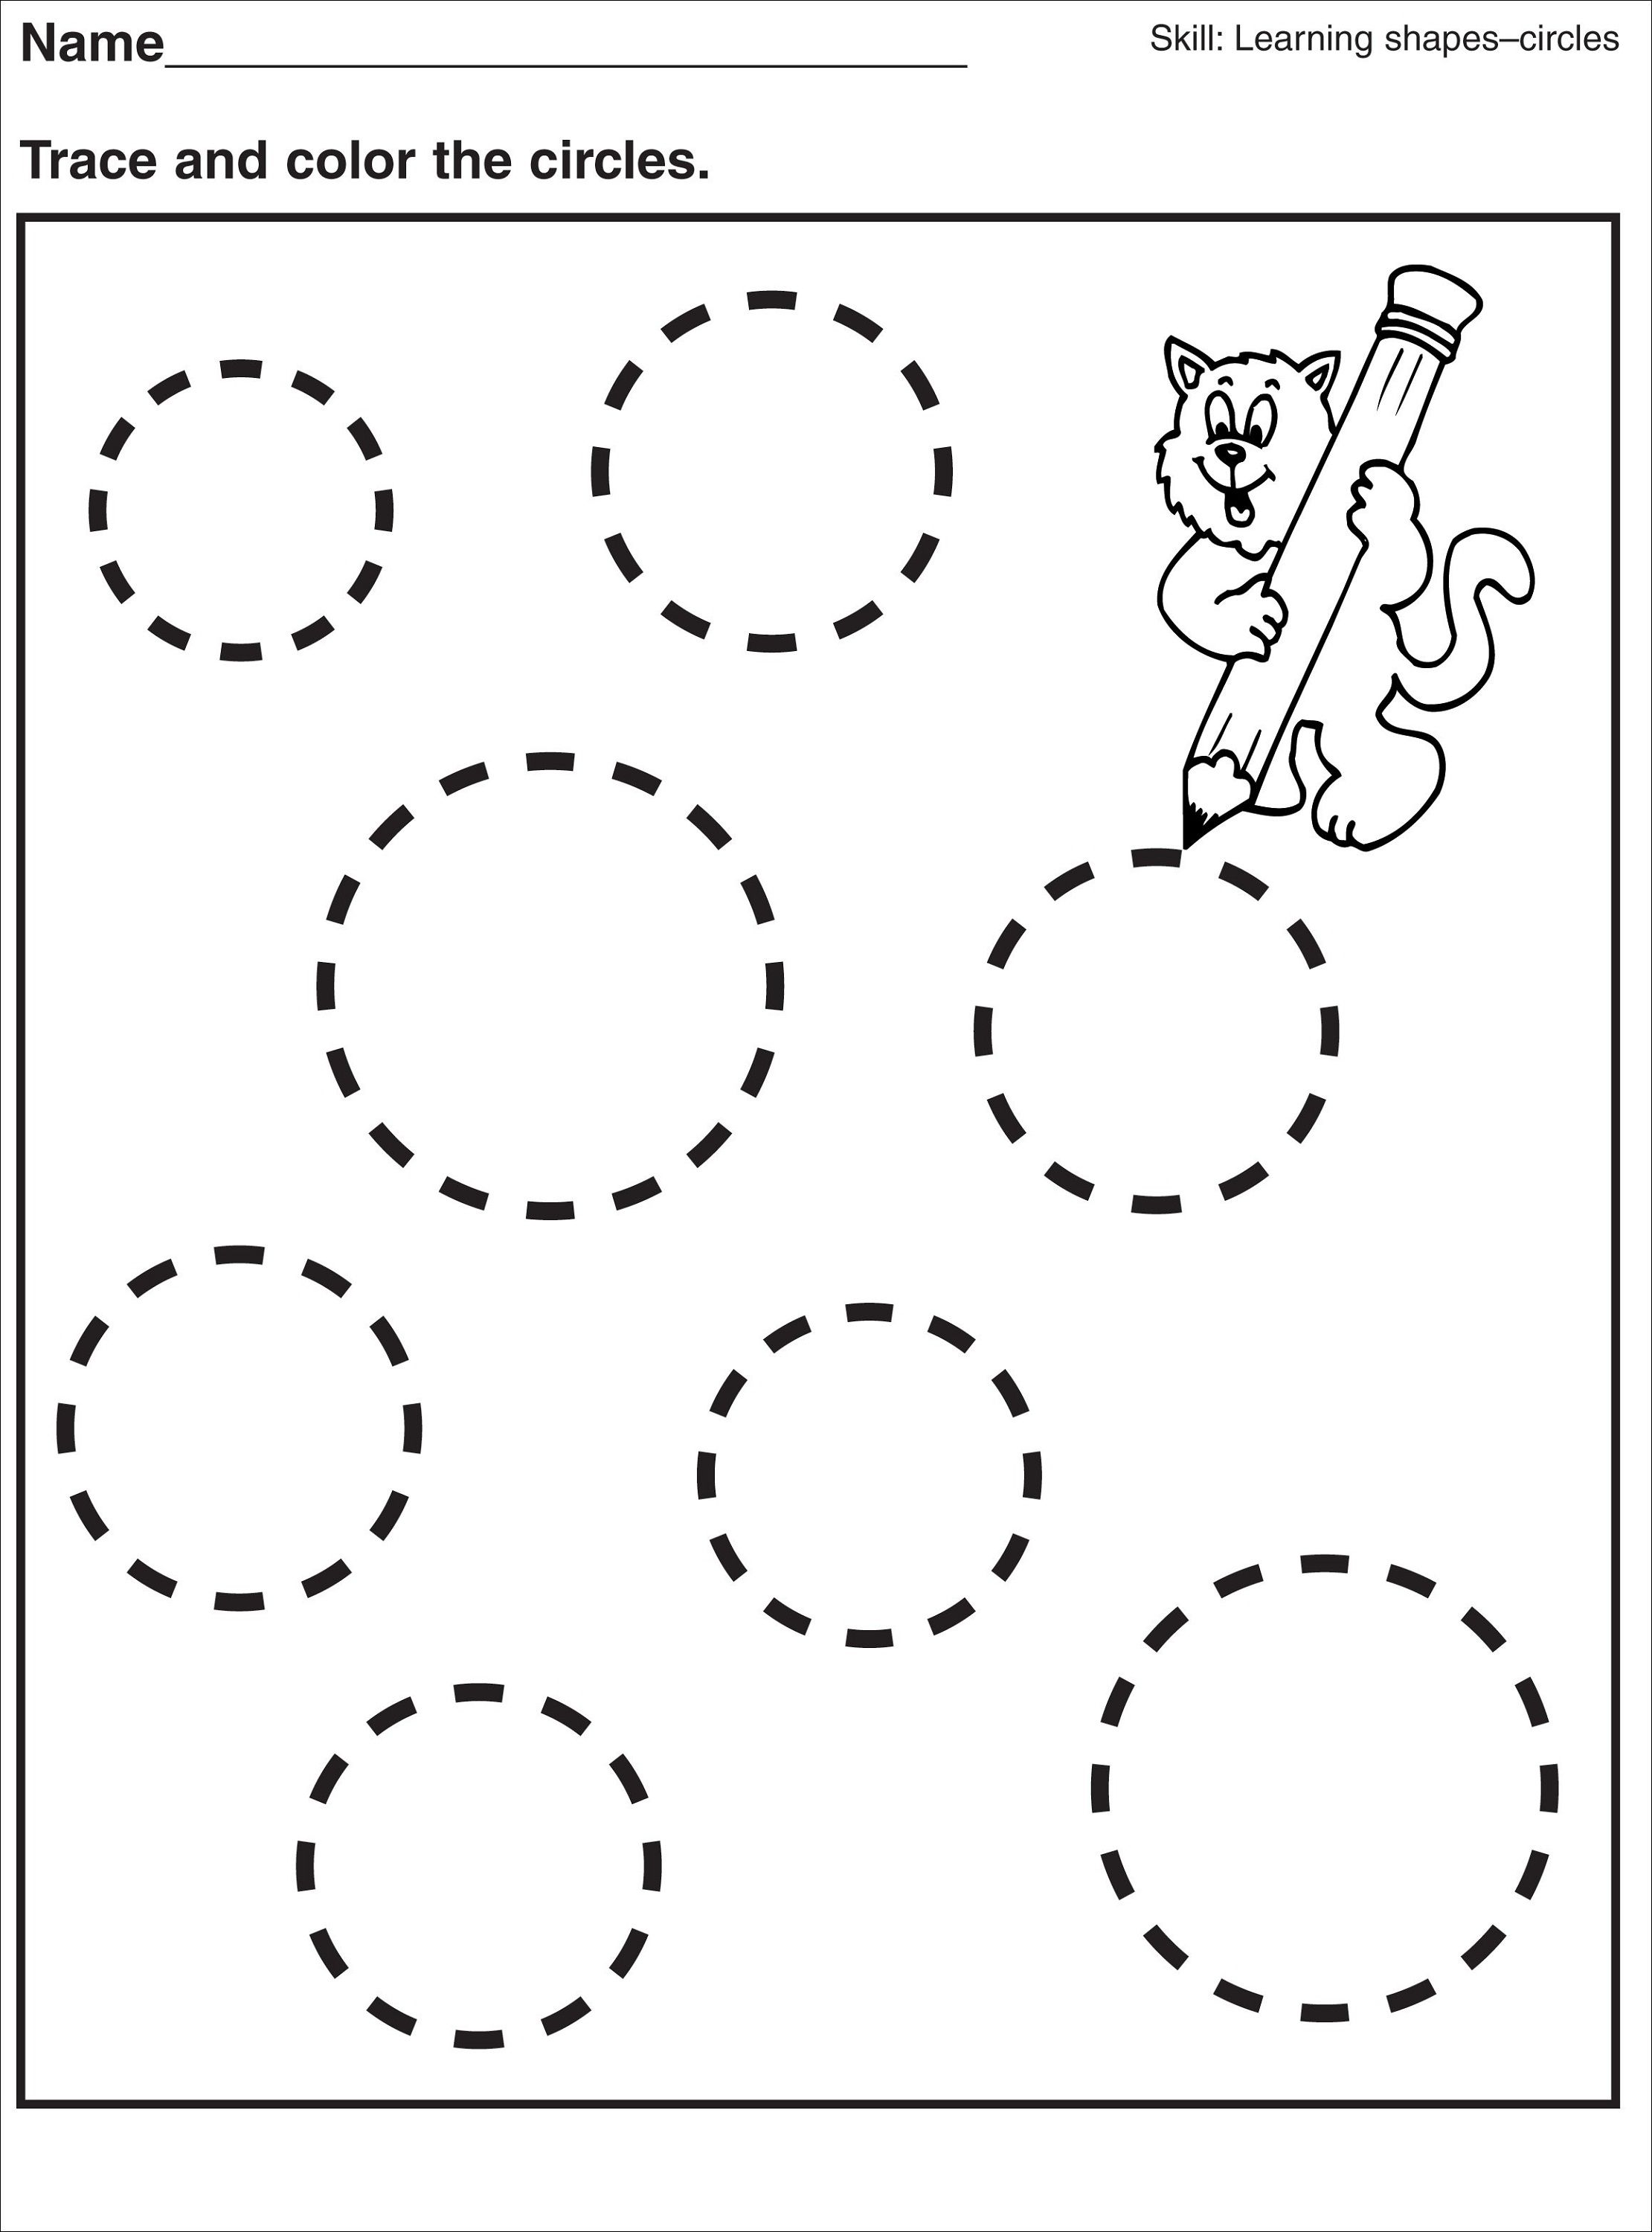 tracing circle worksheets for preschool activity shelter kids worksheets printable. Black Bedroom Furniture Sets. Home Design Ideas